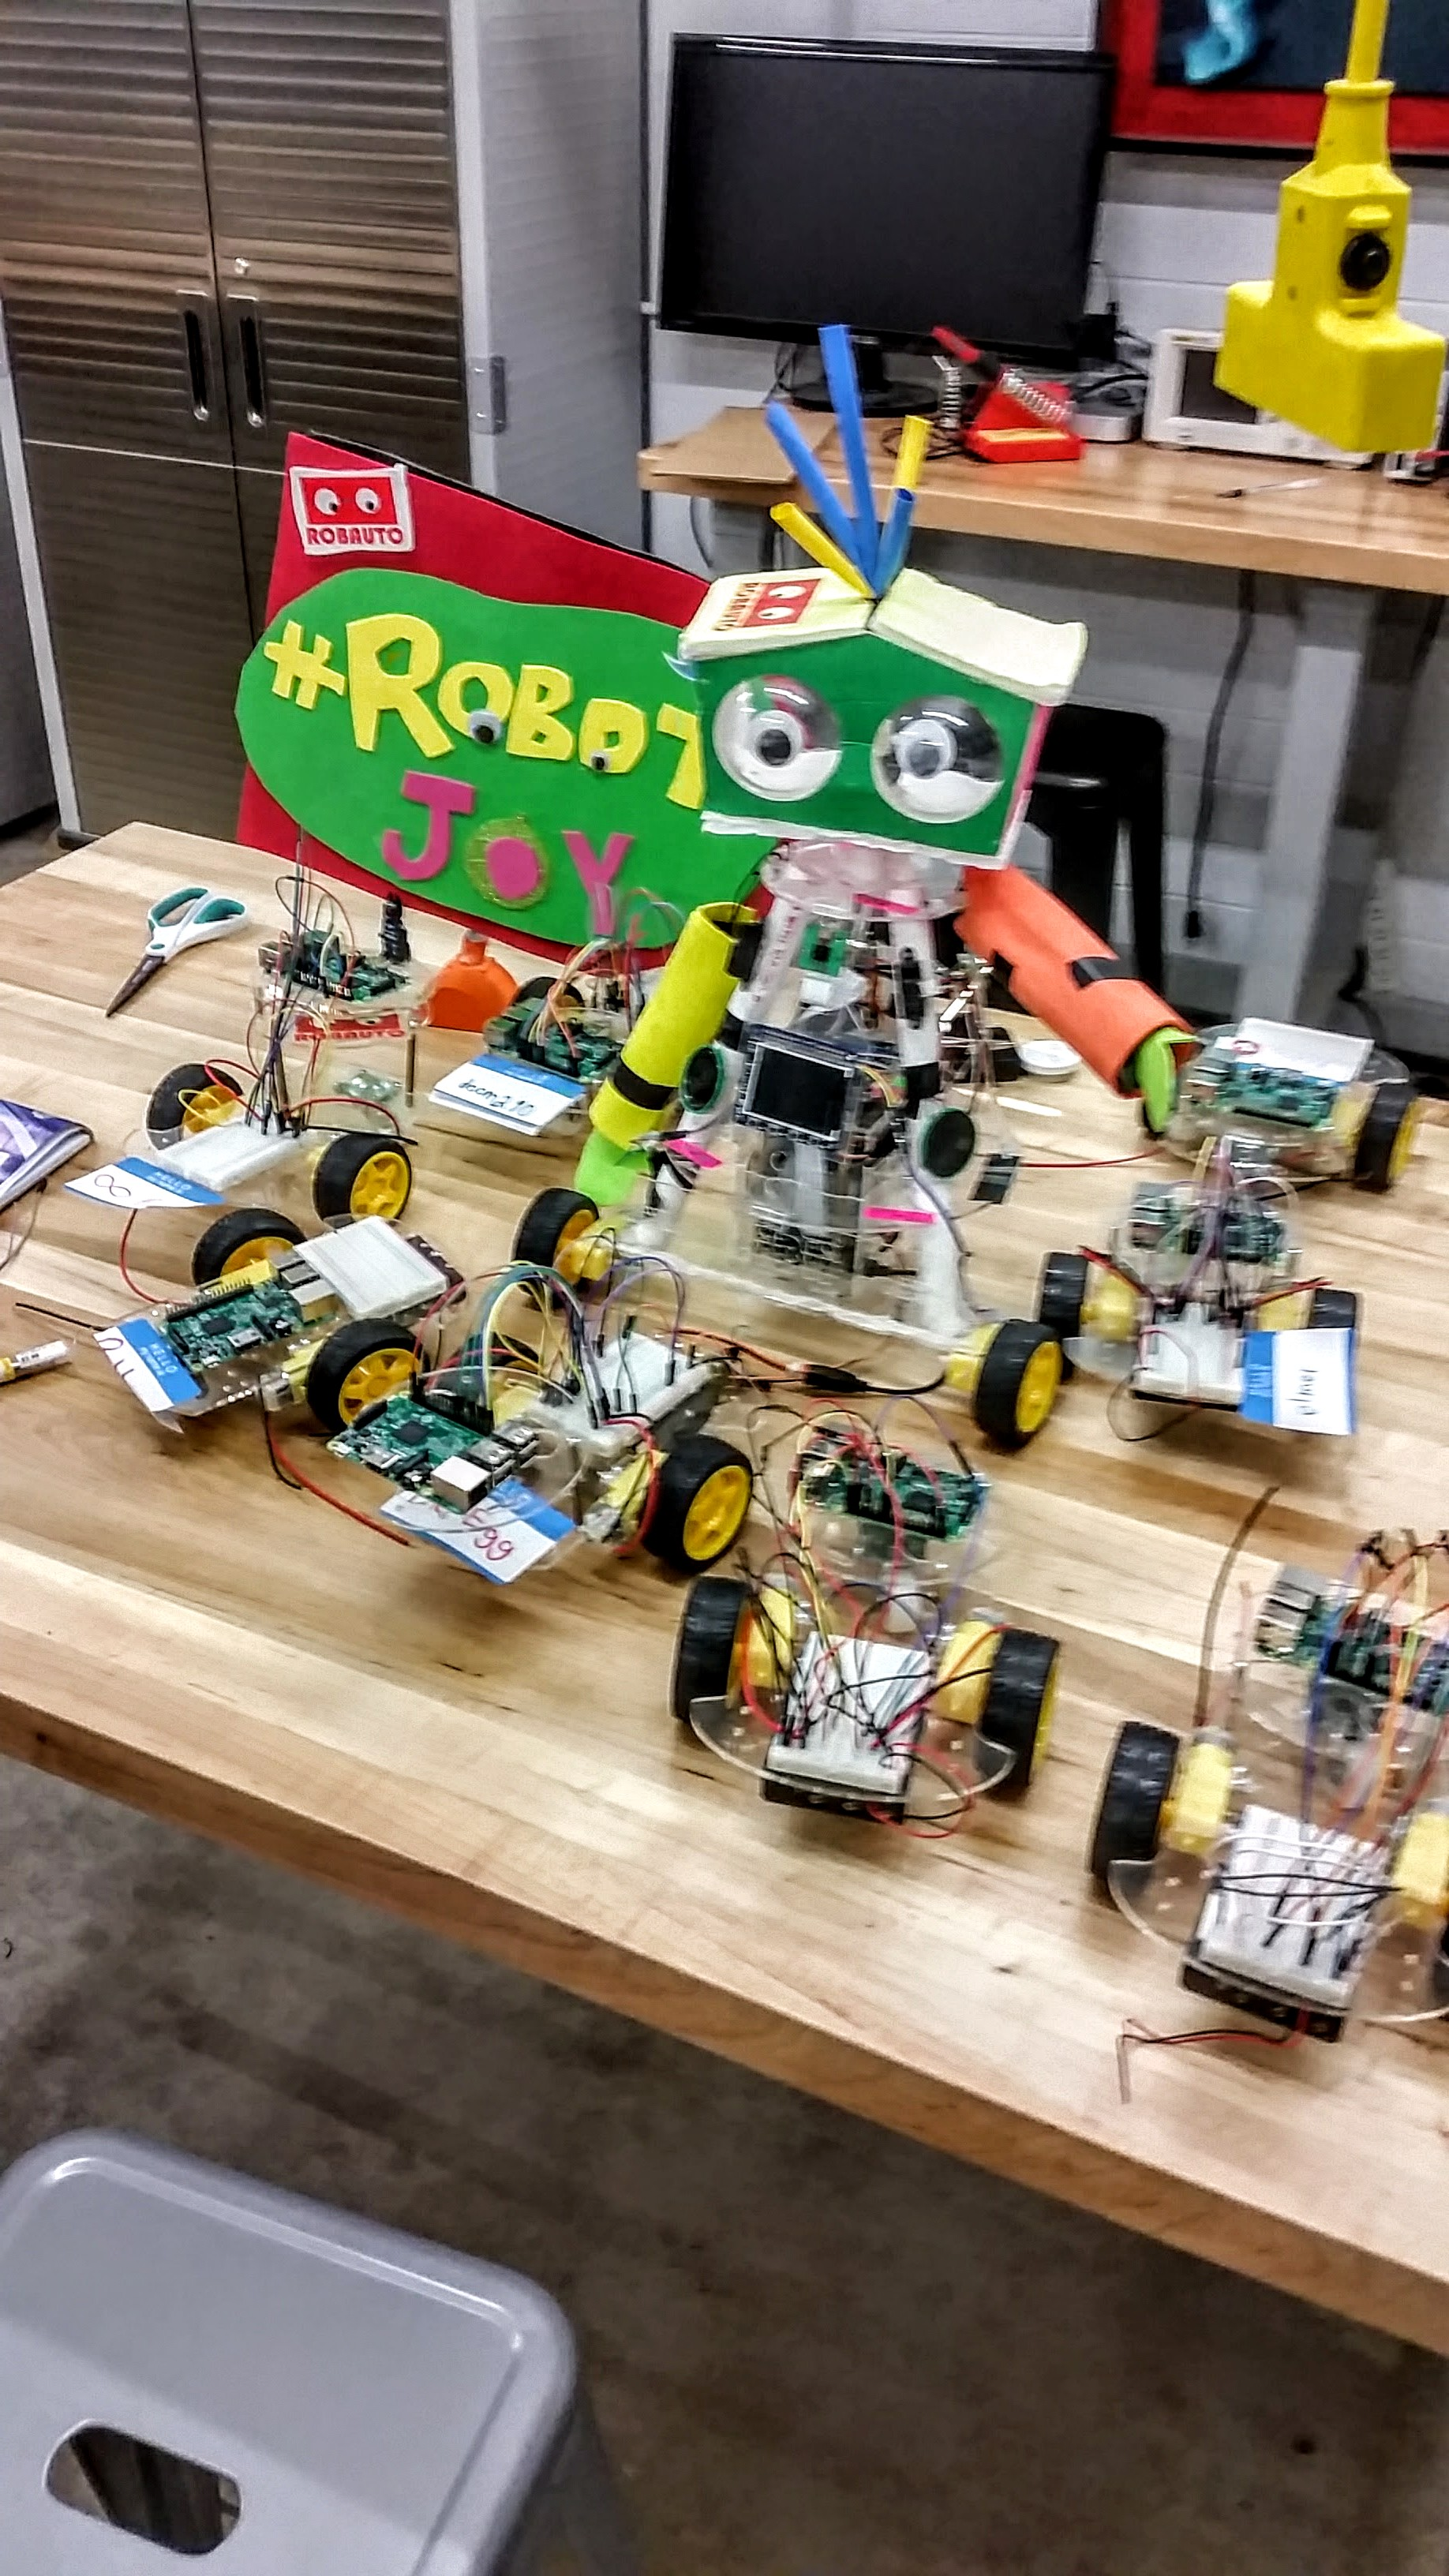 Students as young as 7 are working on the first ever robot swarm built by and for kids.